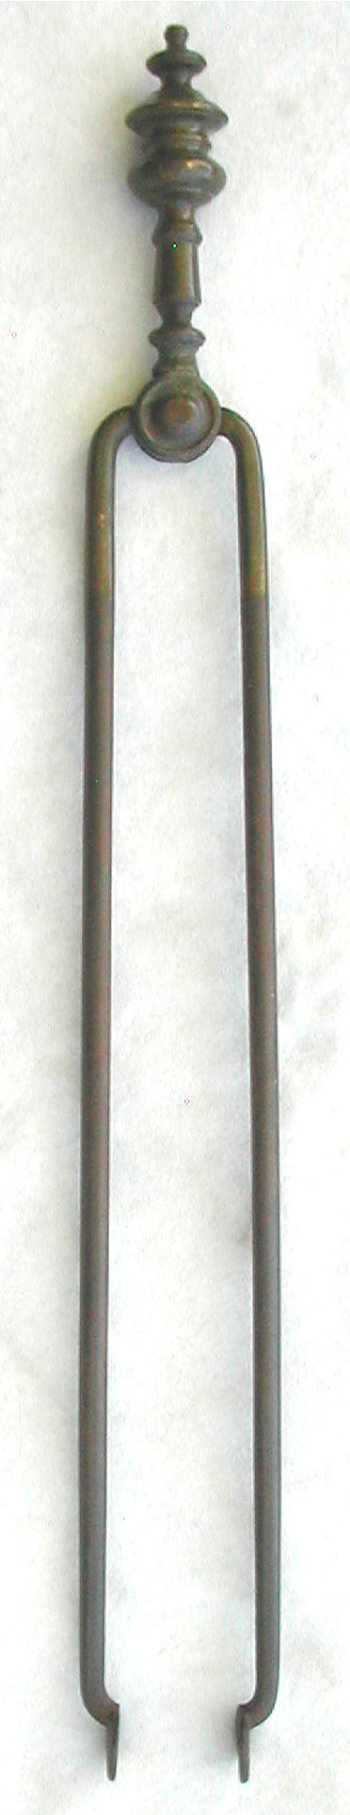 Antique Tongs